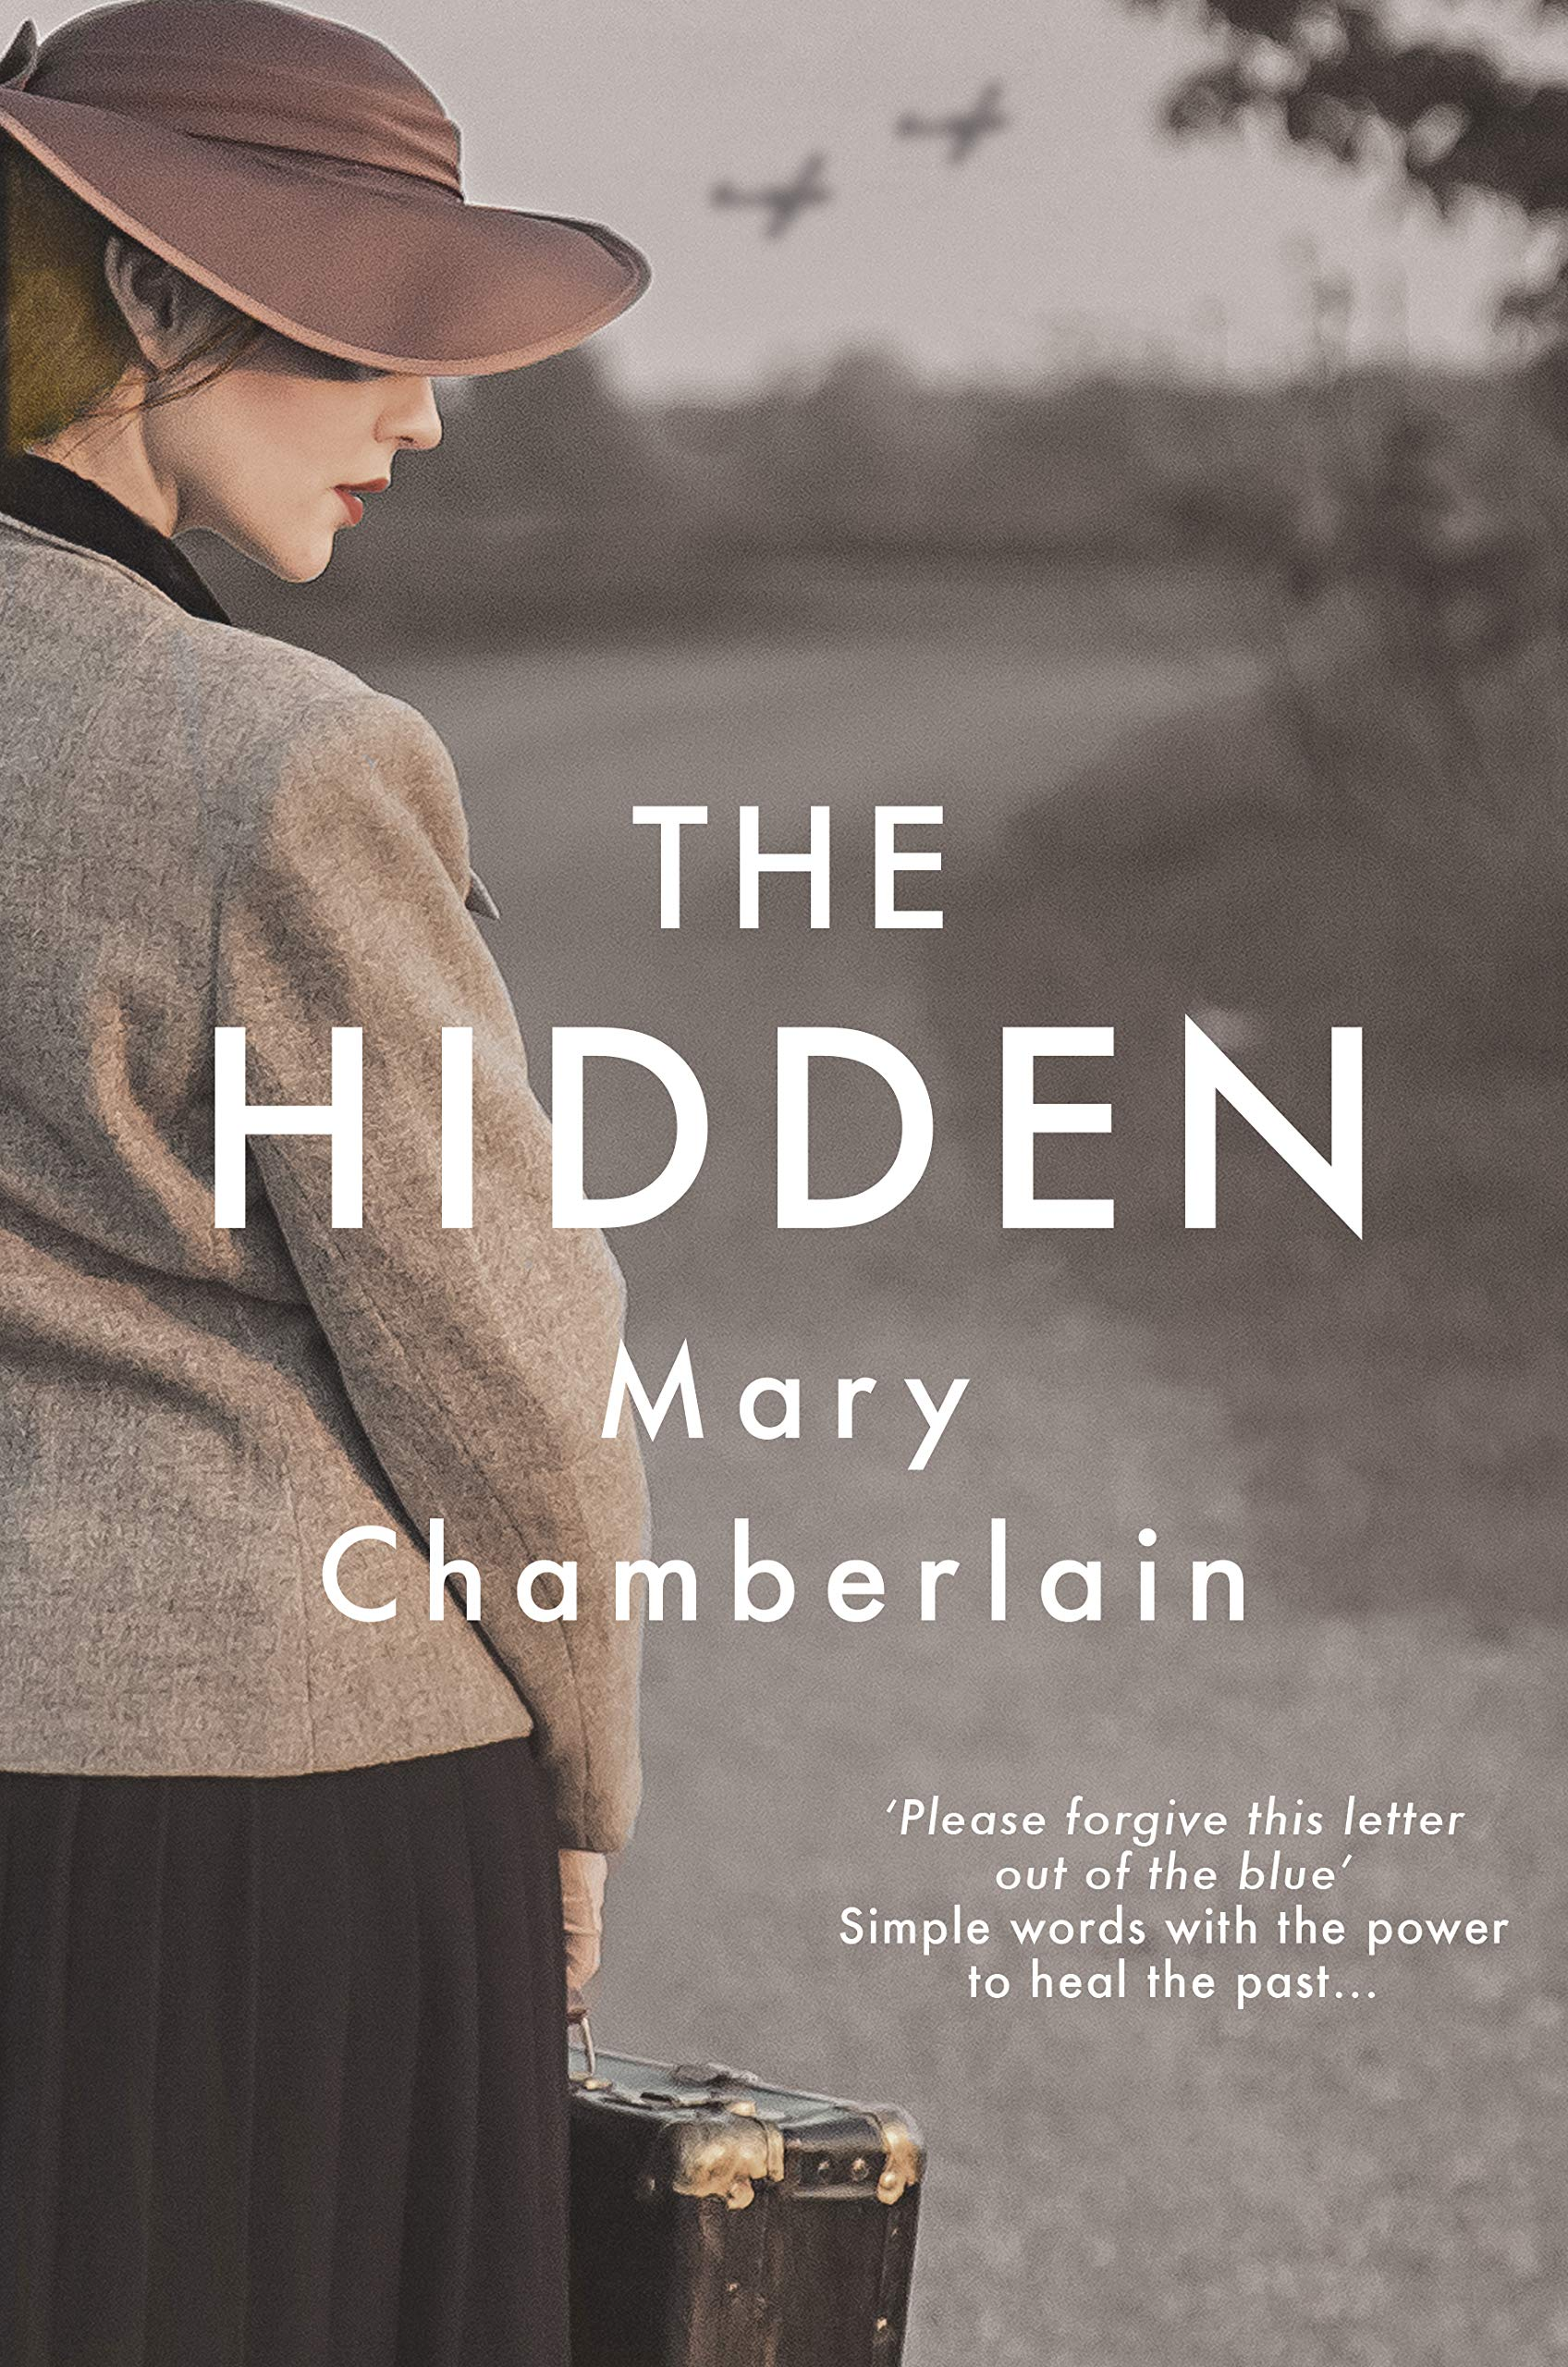 The Hidden, Mary Chamberlain – Blue Pencil Agency Editorial Services